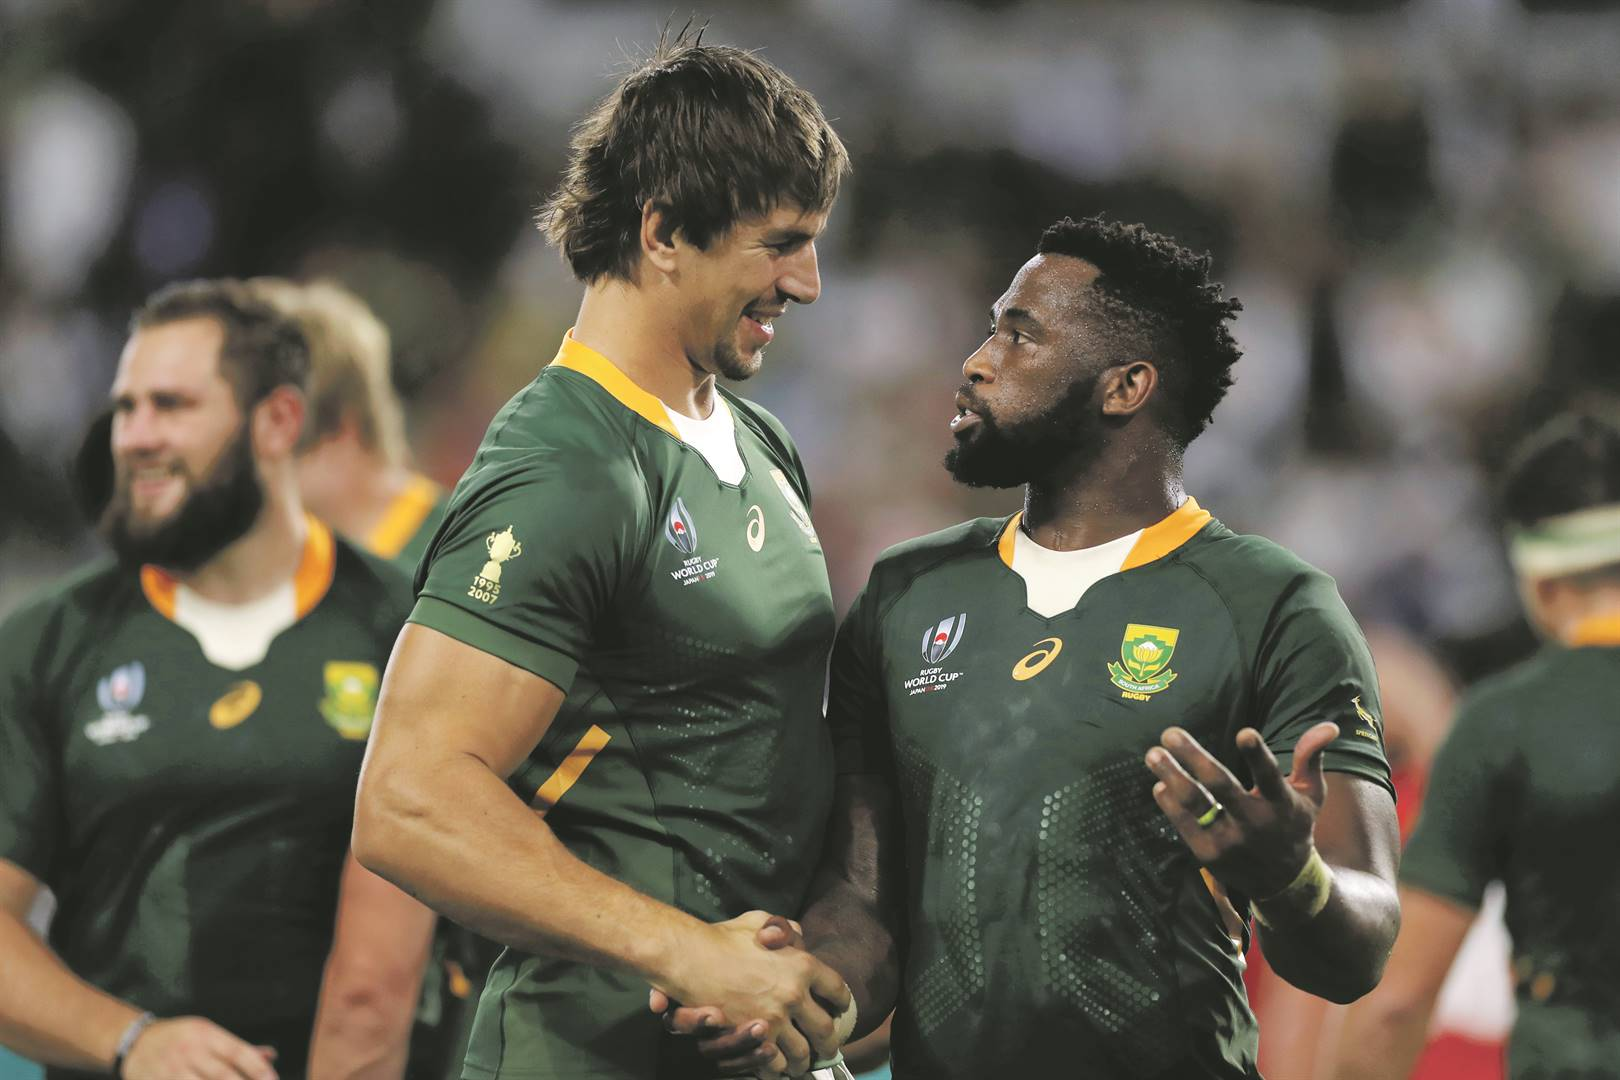 News24.com | Time for a Soccer Bok (body of knowledge)